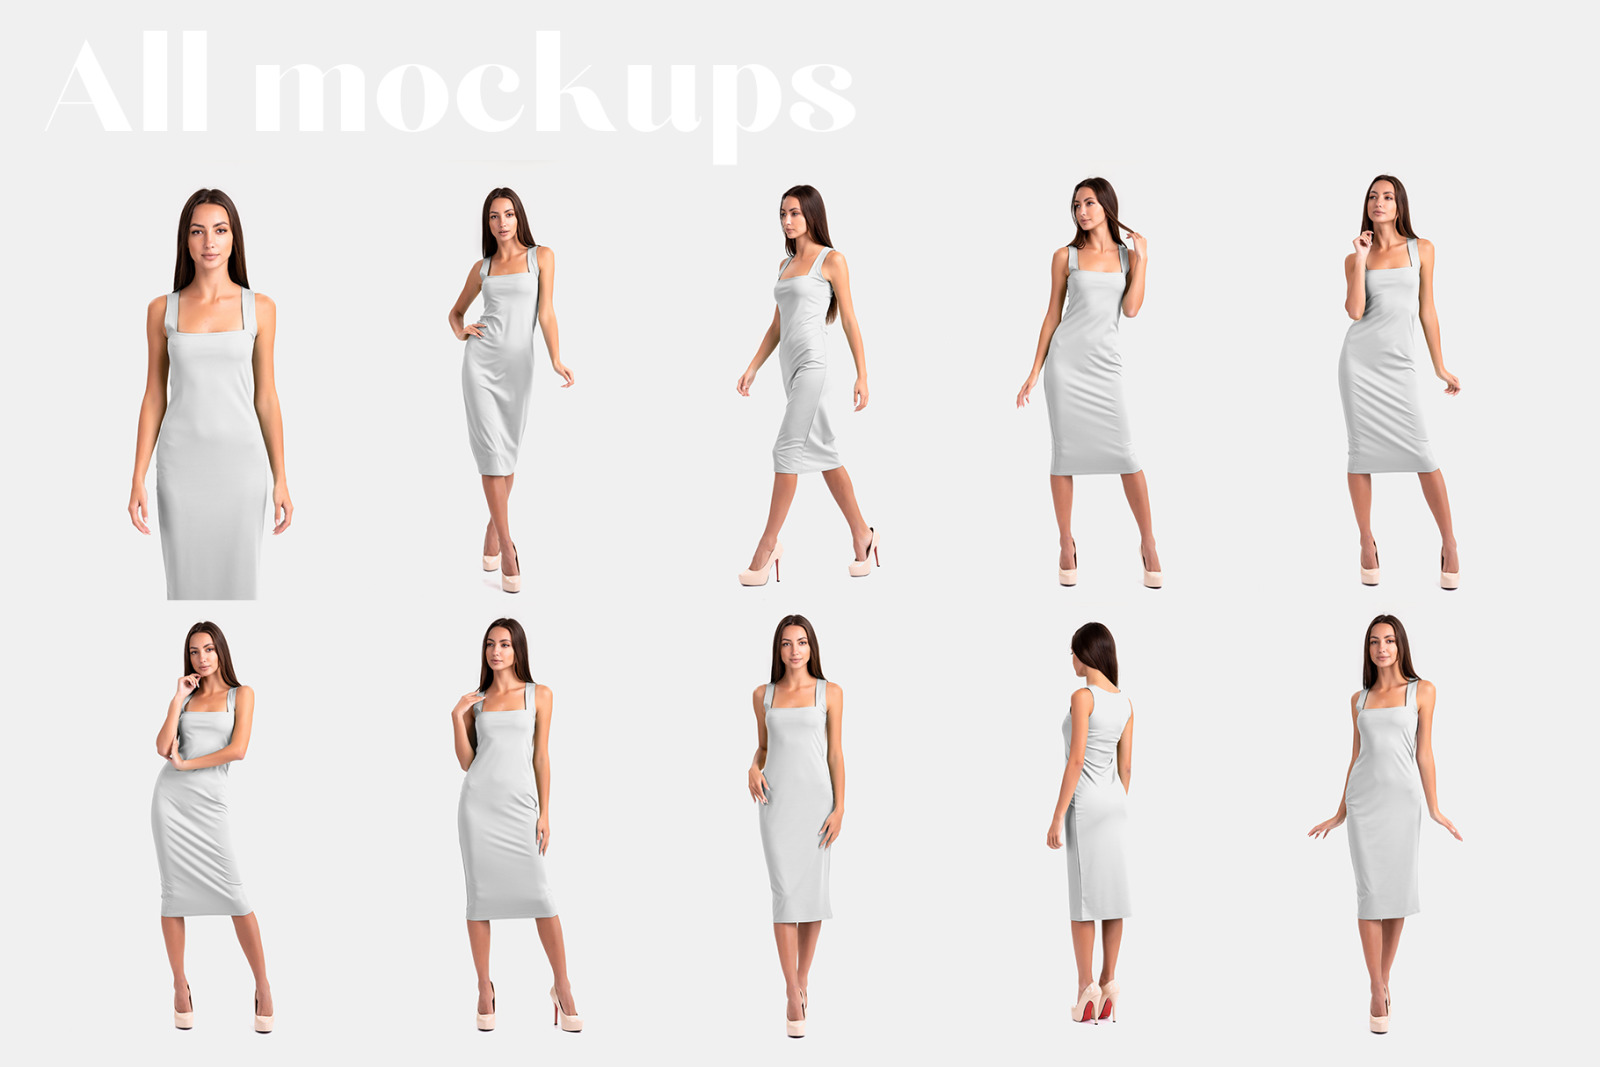 Download Dress Mockup Psd Free Yellowimages